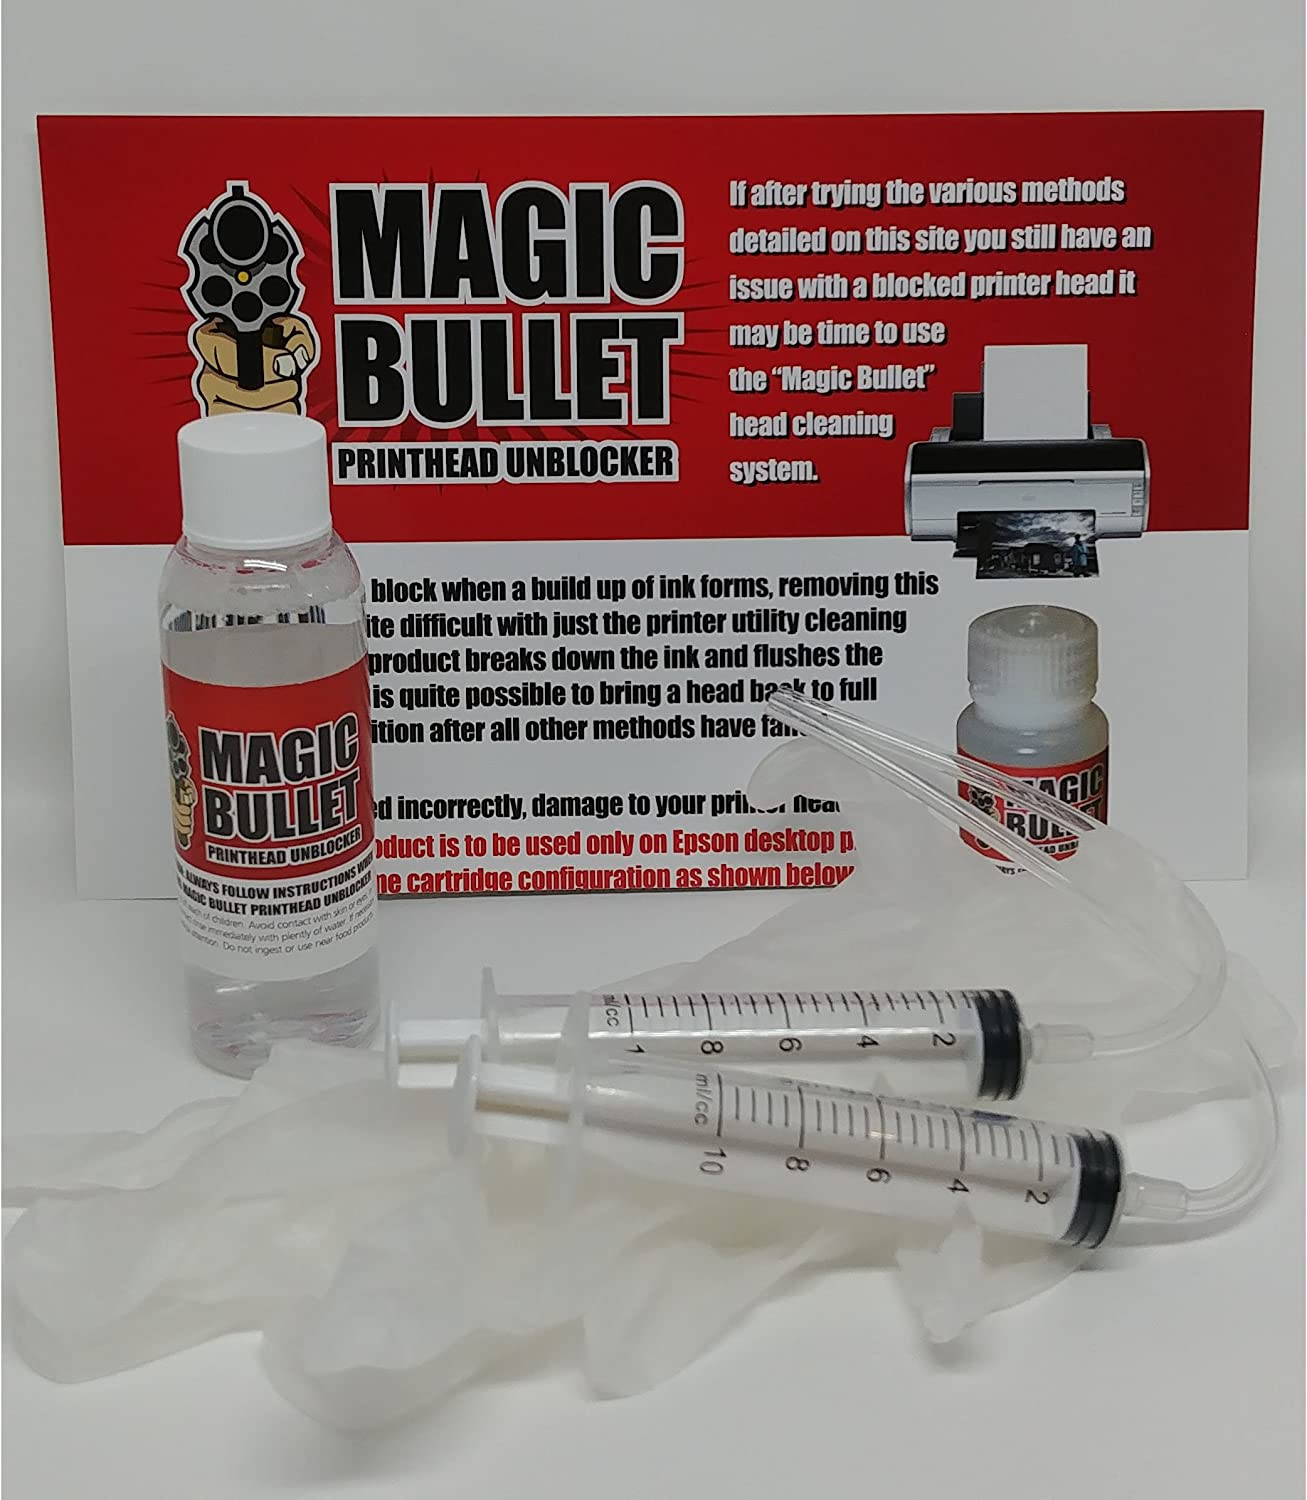 Magic Bullet Print Head Sales results Max 65% OFF No. 1 Cleaner and Kit Unblocker